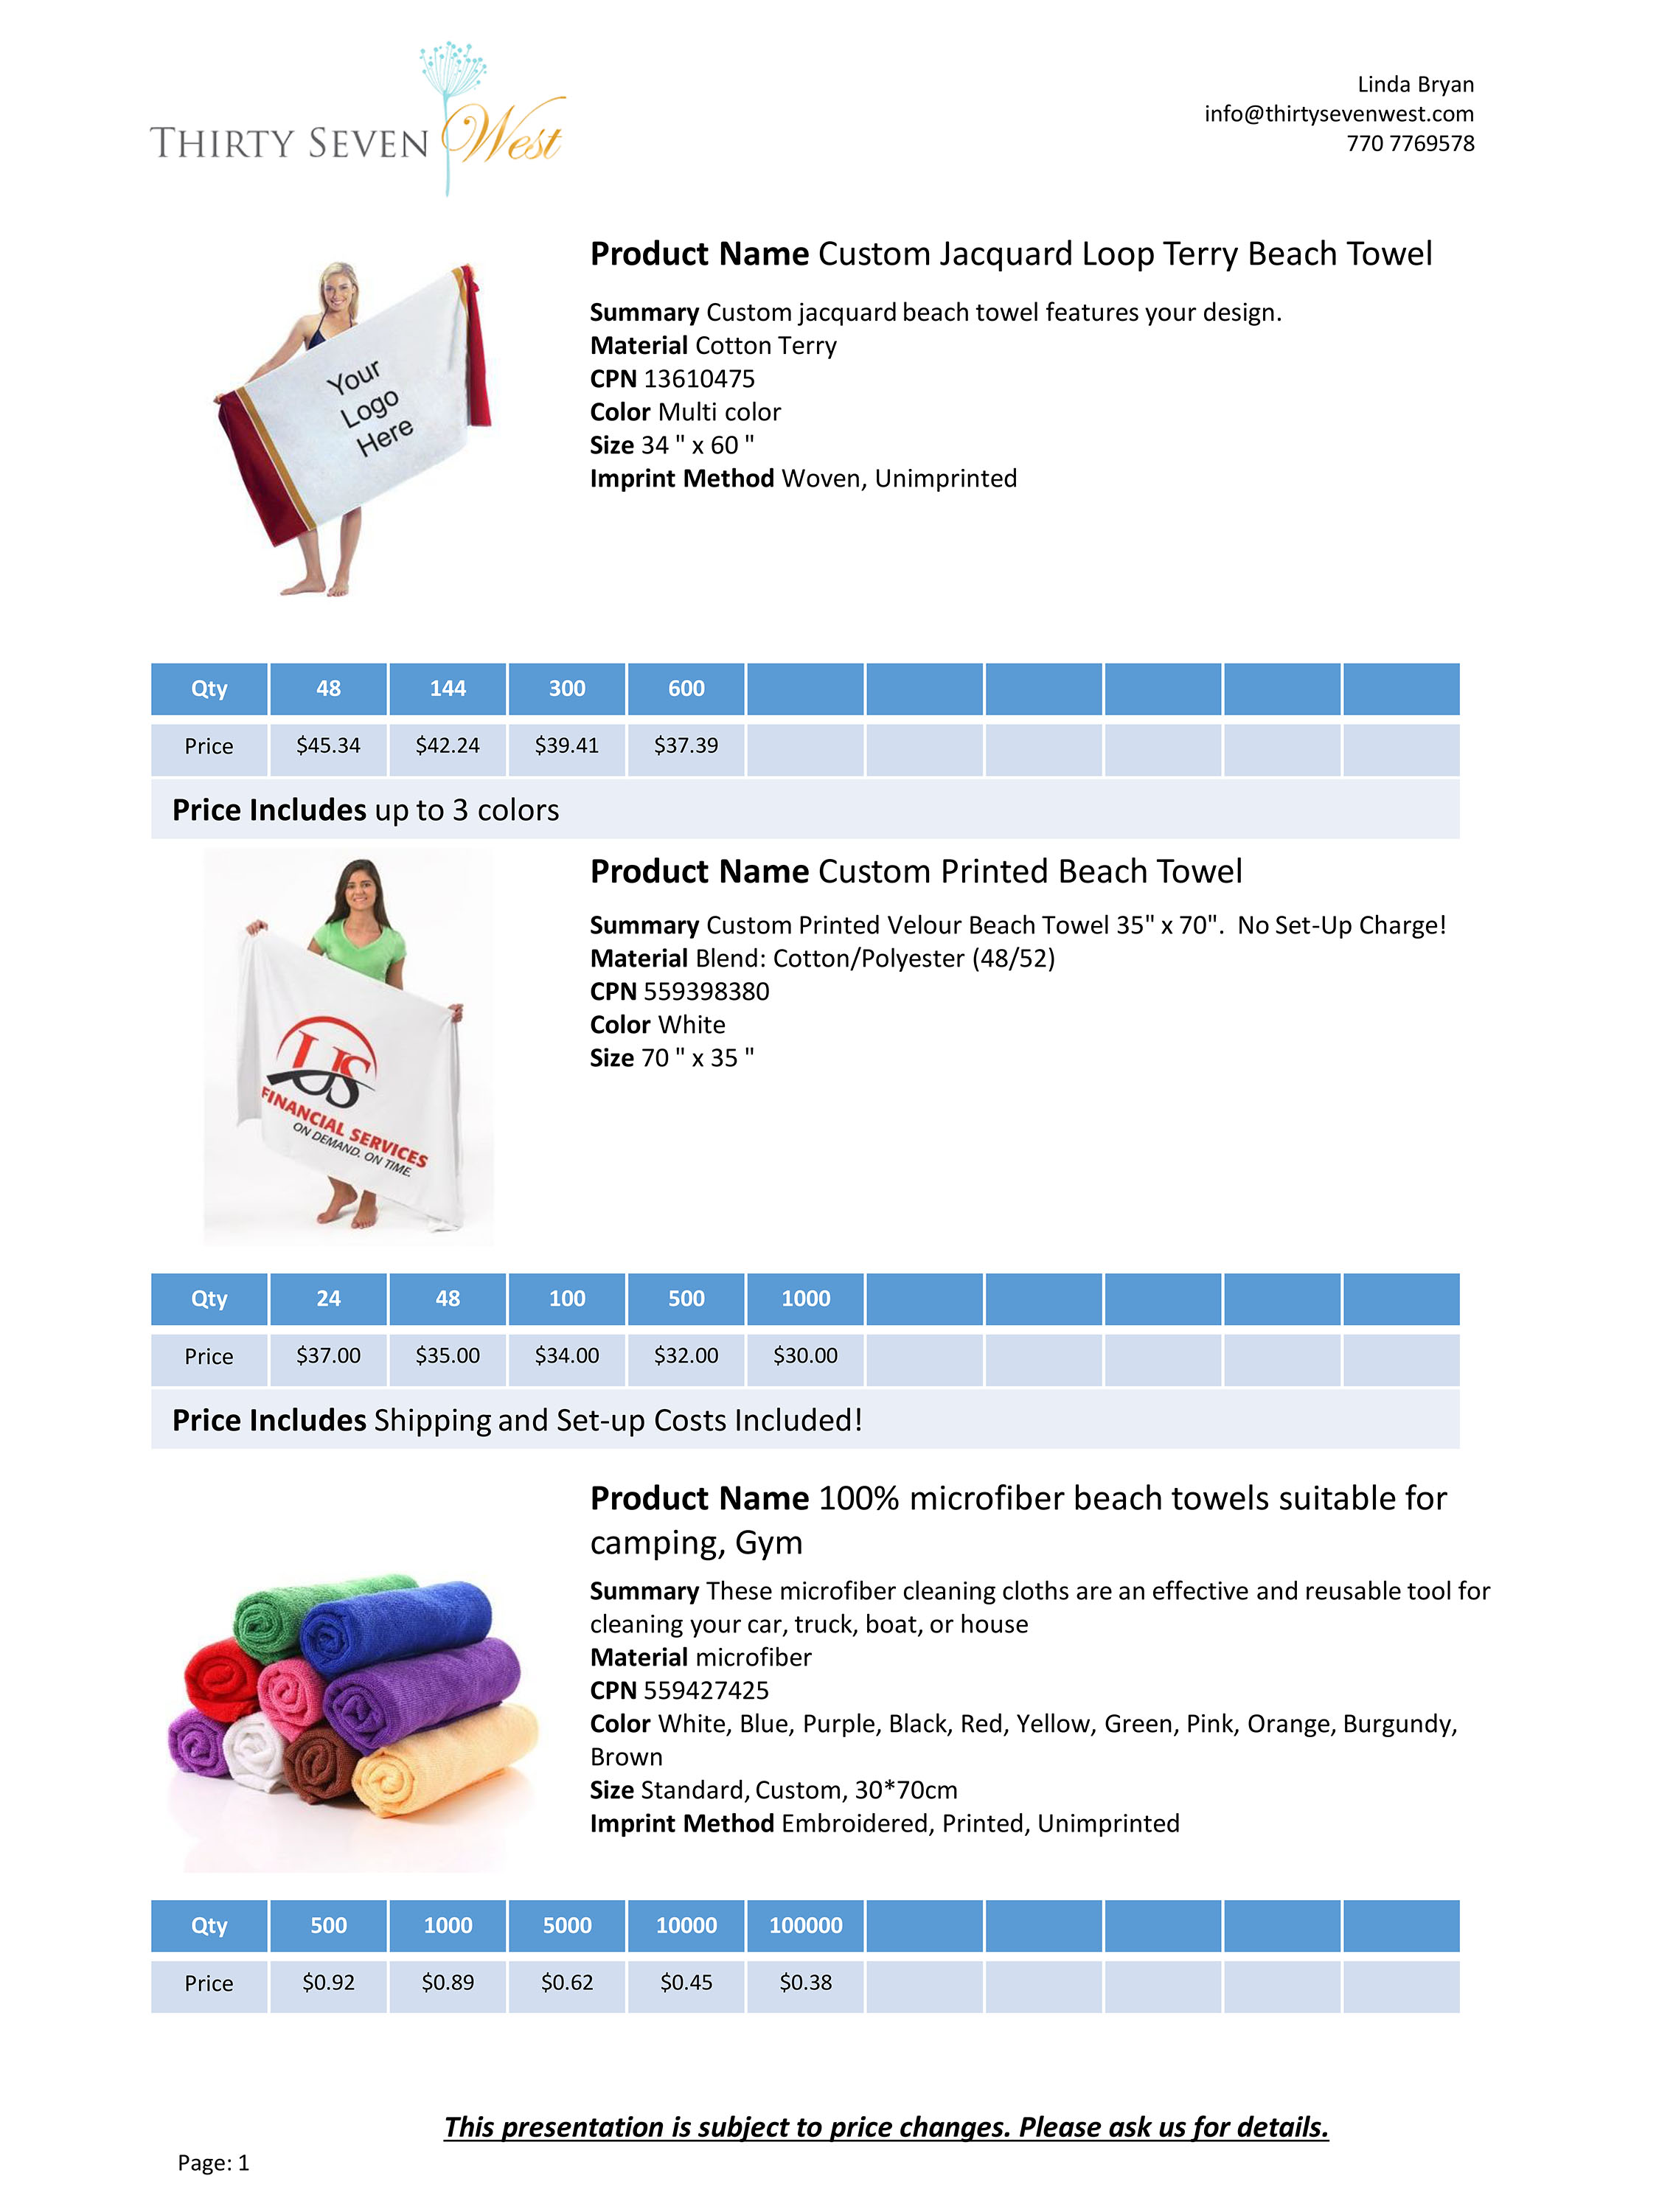 home-items-for-clients-1-300.jpg